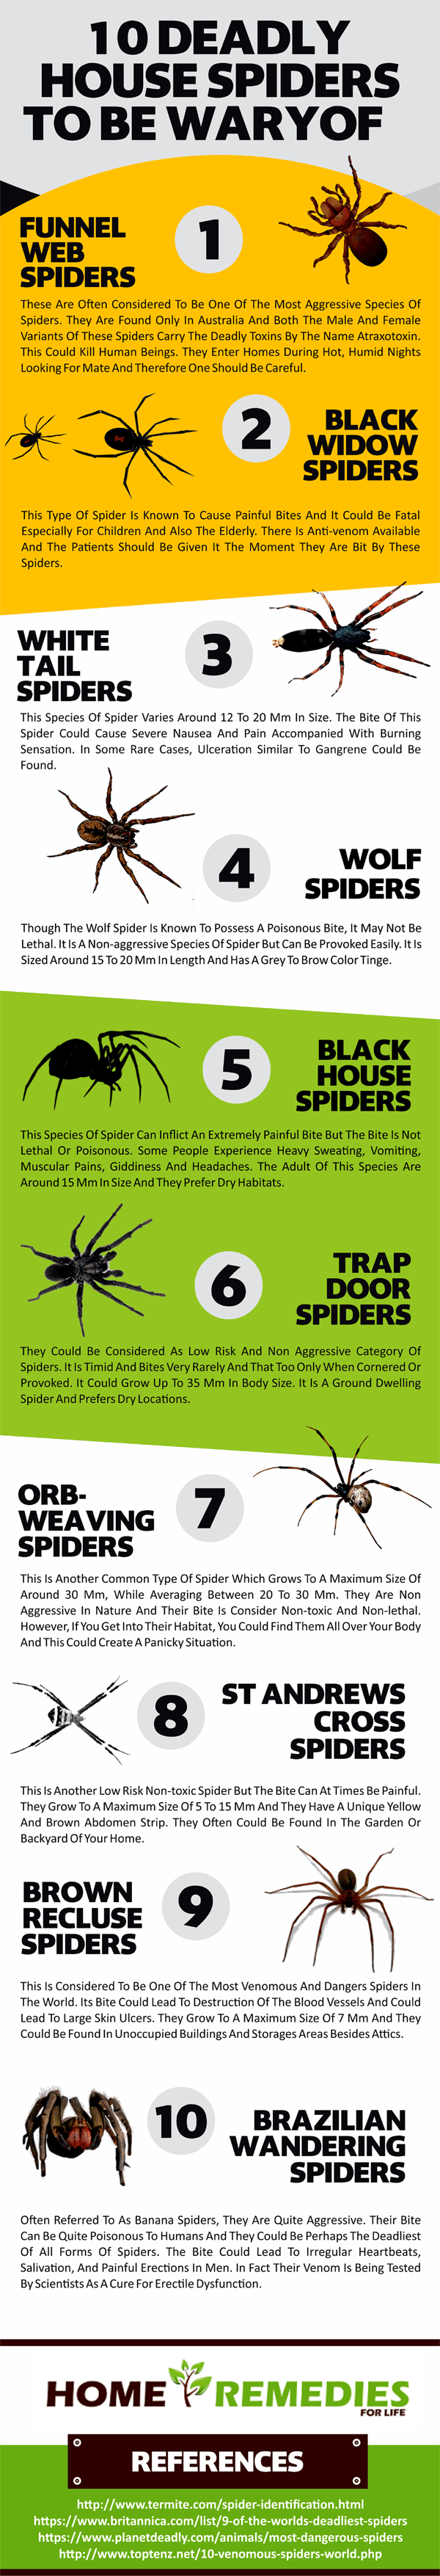 BEWARE Deadly House Spiders To Be Wary Infographic